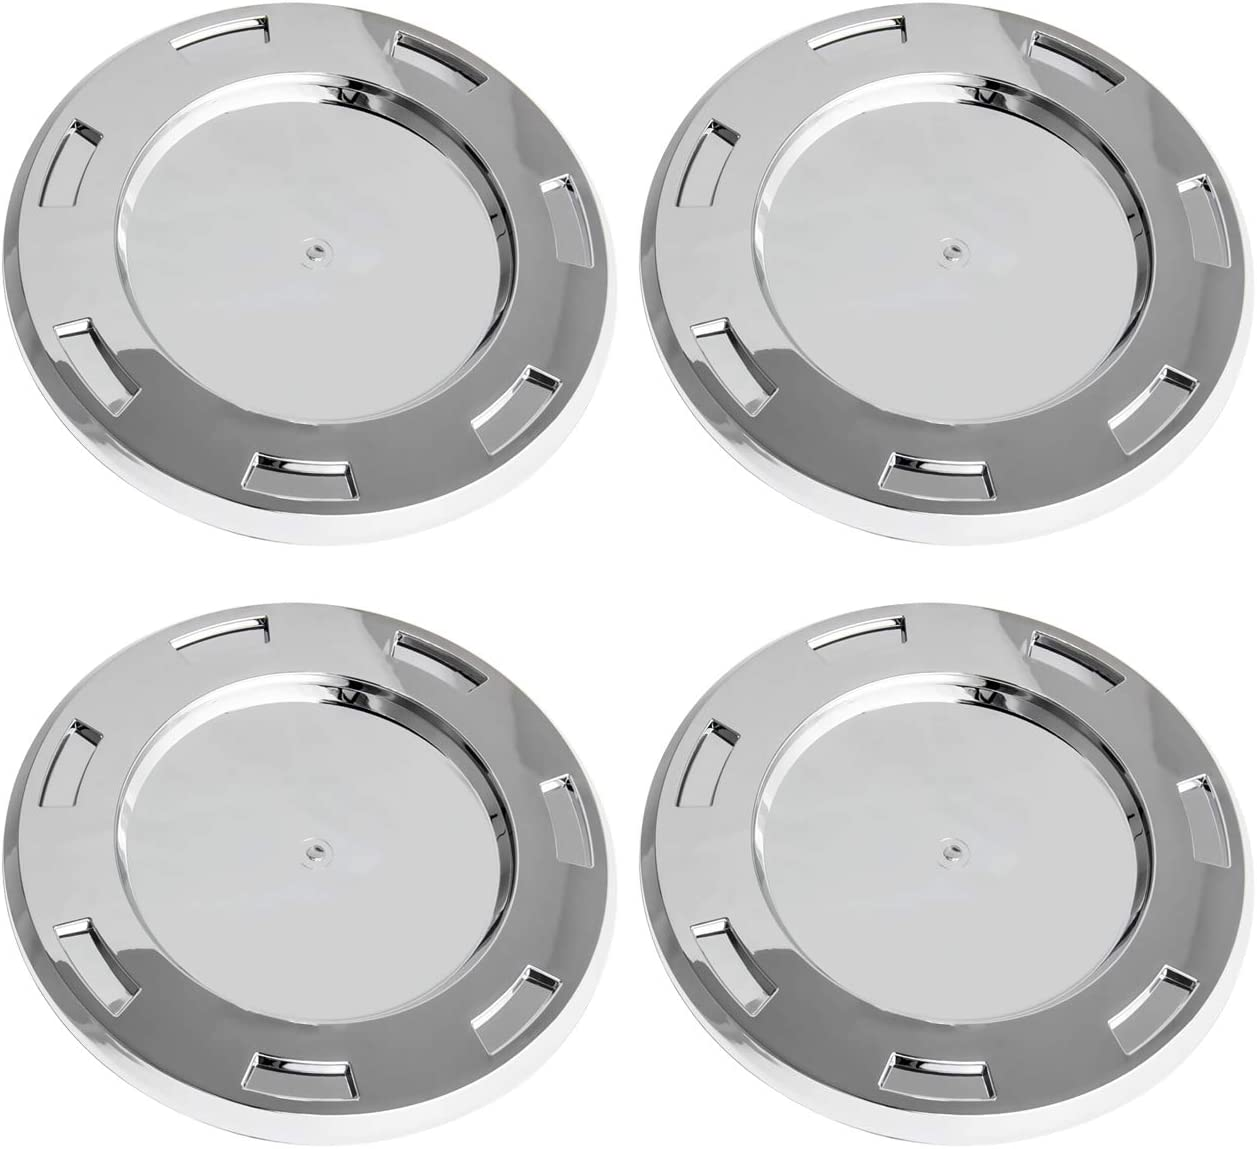 B4B BANG 4 BUCK 4 Packs 22 7 Spoke Wheel Center Hub Cap Chrome with Ring Replacement 9596649 Compatible with Cadillac Escalade 2007-2014